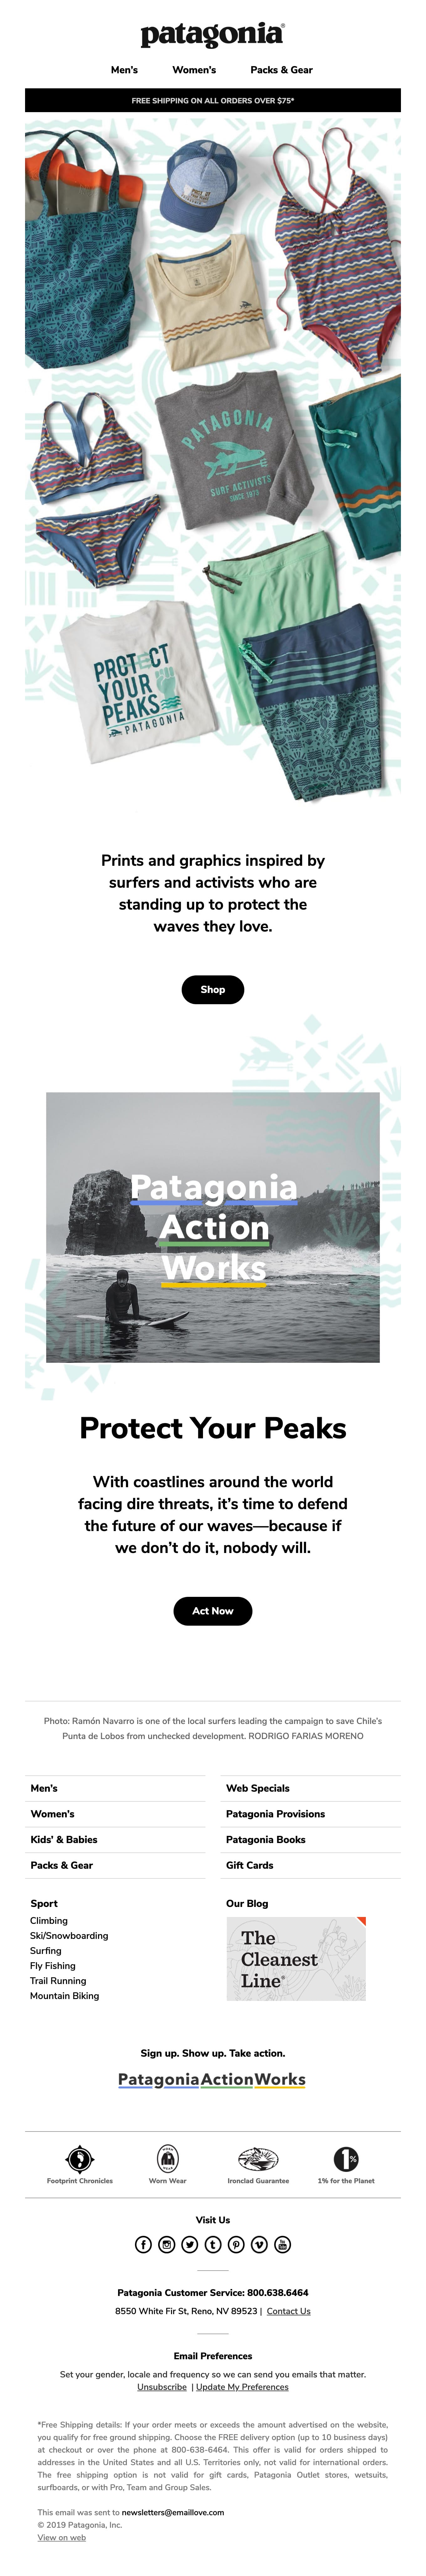 New Surf Graphics: Protect Your Peaks Email Screenshot